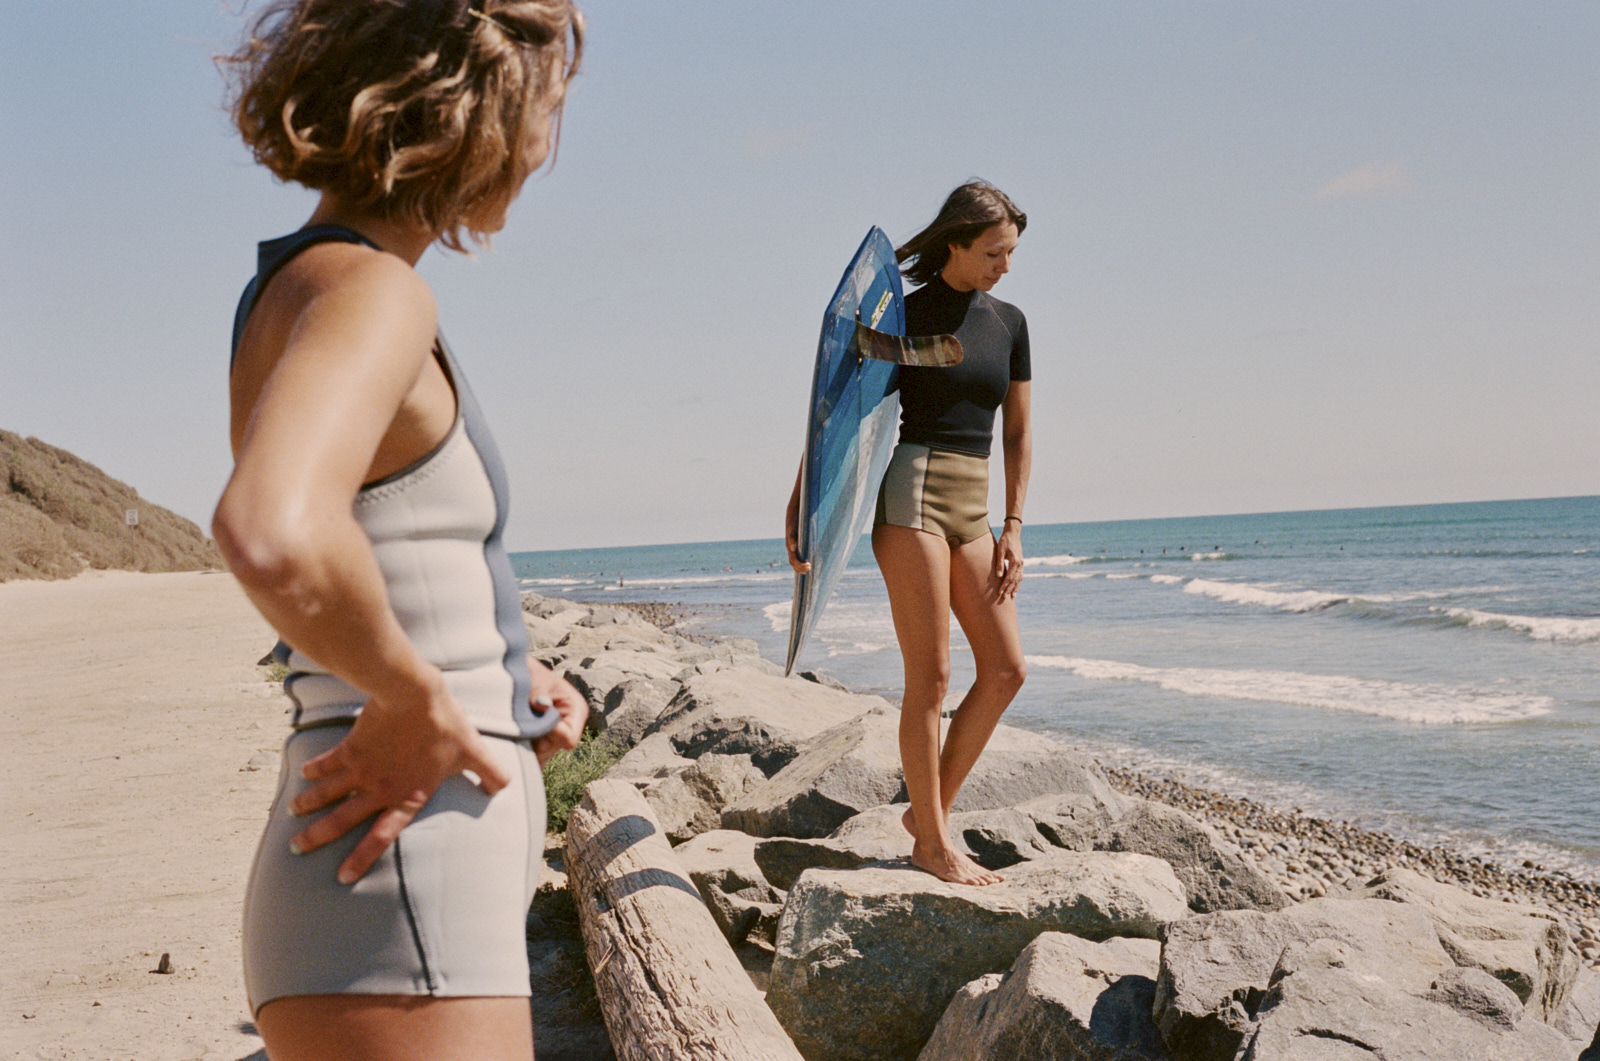 Female owned and run wetsuit surf brand photographed surfing in California and in studio in New York. Film directed and edited by Dylan Johnston.